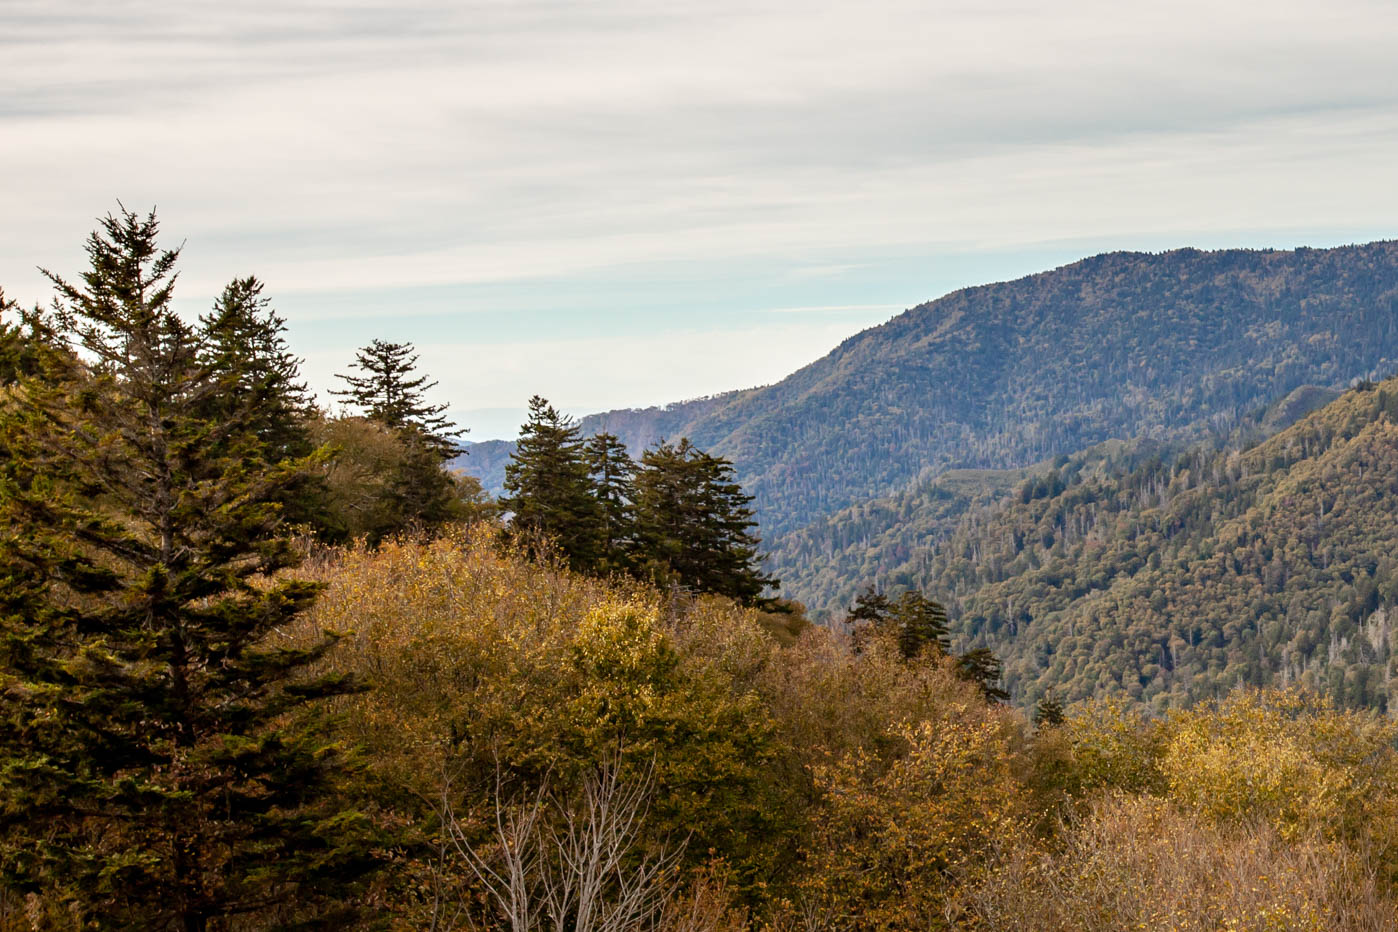 Newfound Gap Overlook off of Newfound Road at Great Smoky Mountains National Park #vezzaniphotography